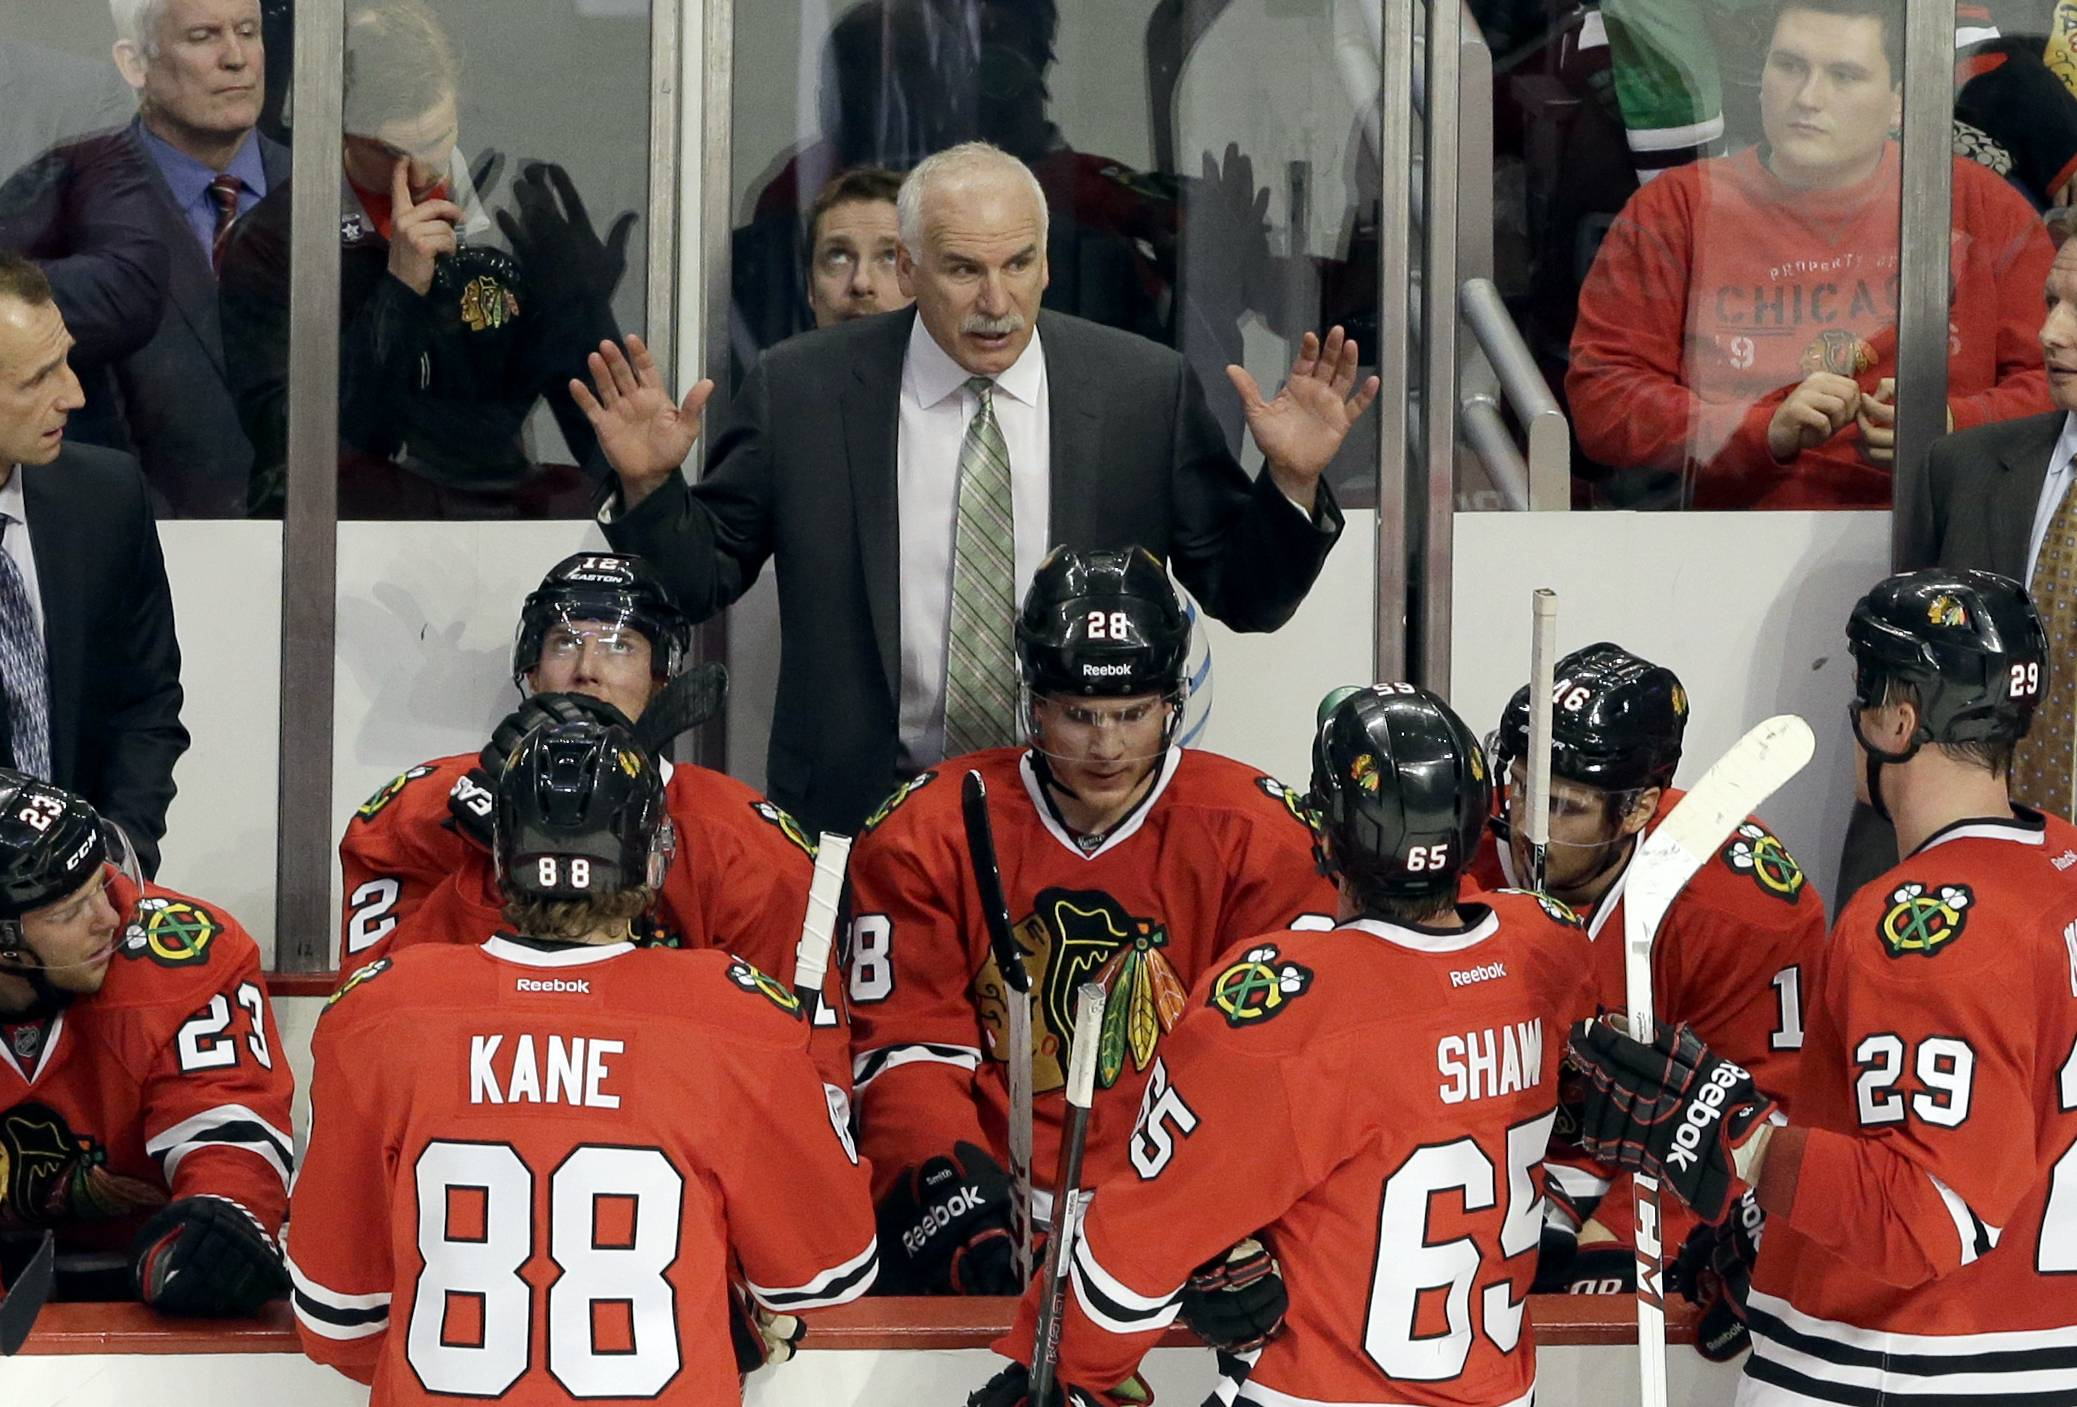 Blackhawks head coach Joel Quenneville, top, talks to his team during the third period of an NHL hockey game against the Nashville Predators in Chicago, Friday, March 14, 2014. The Predators won 3-2.